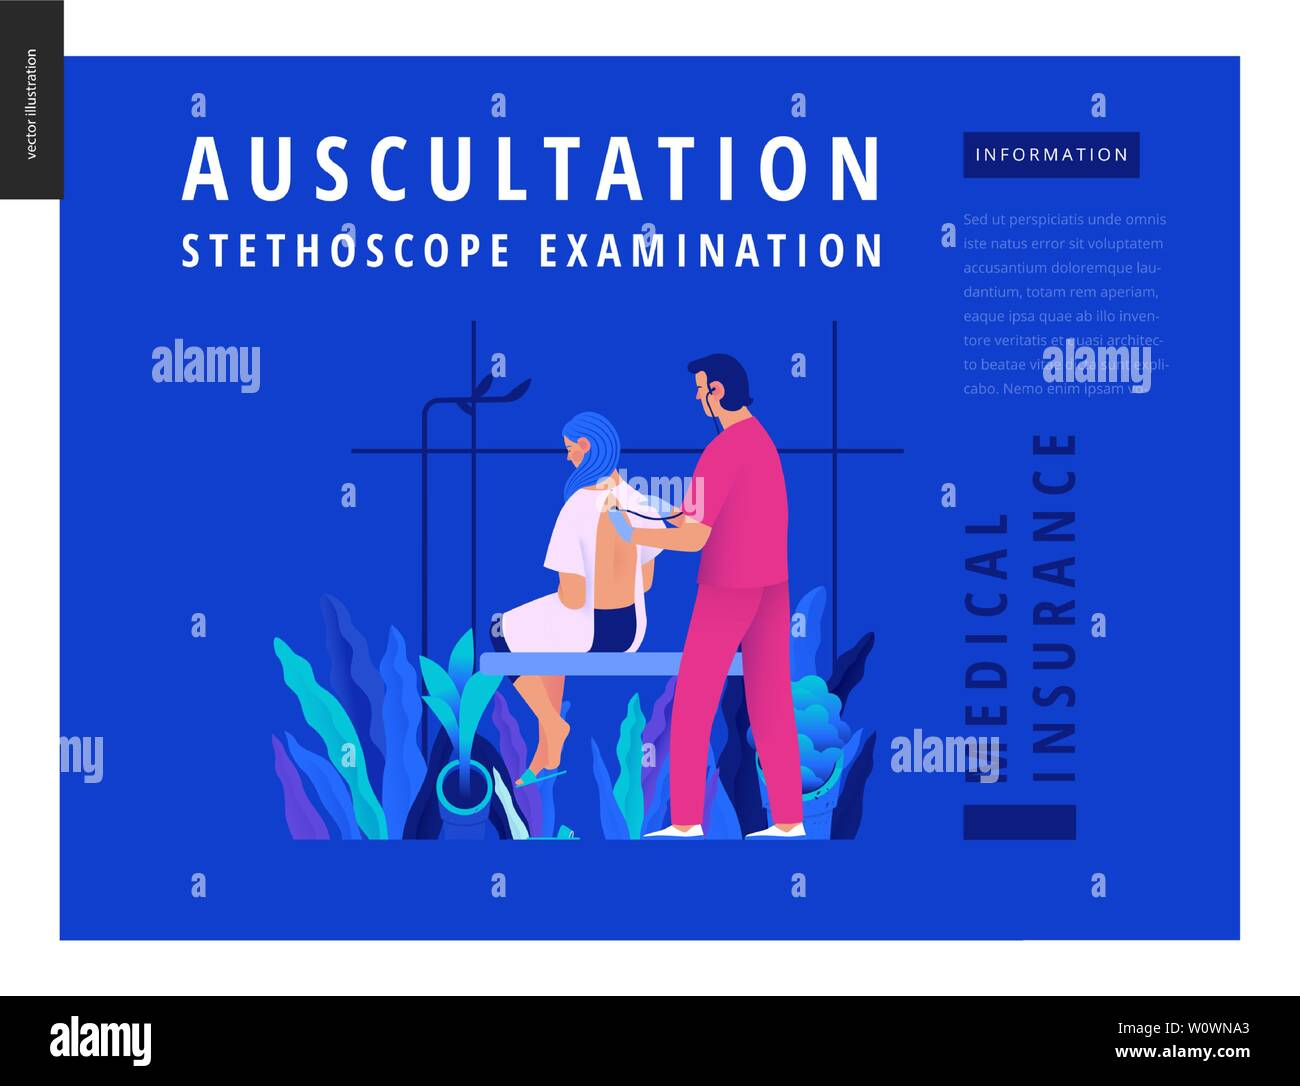 Medical tests Blue template - auscultation -modern flat vector concept digital illustration of stethoscope examination procedure - patient and doctor Stock Vector